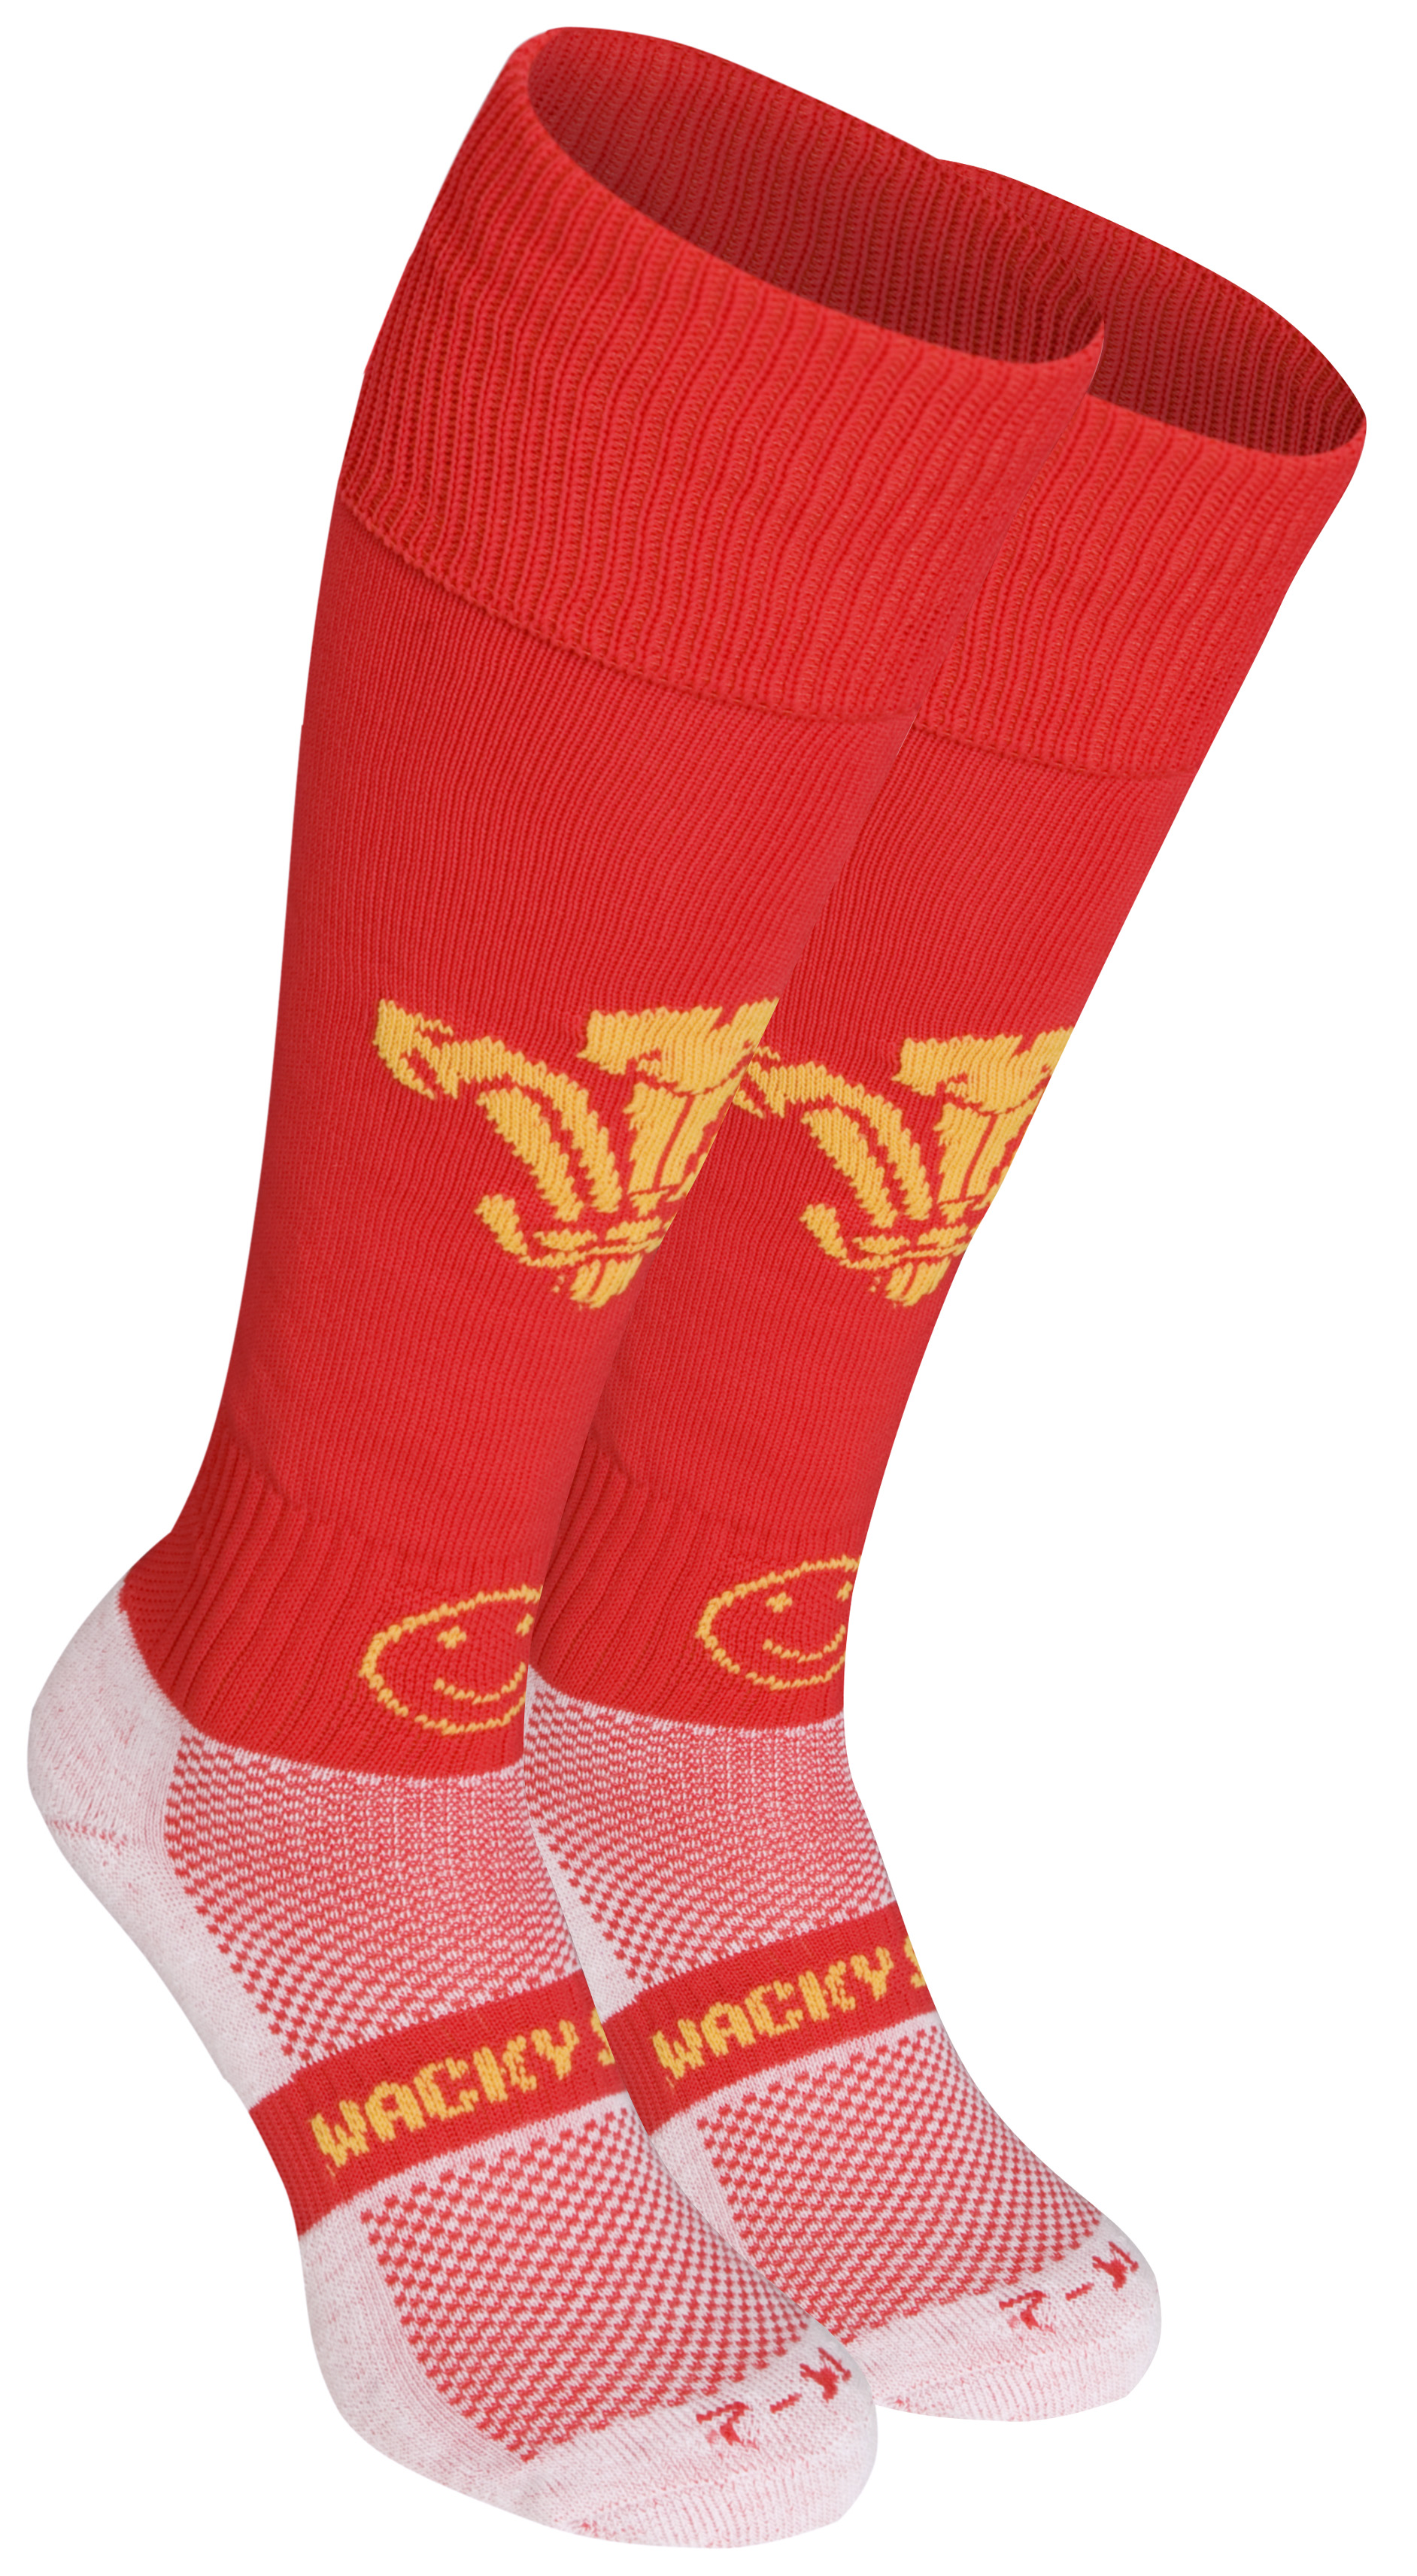 WackySox Socks - Red - Size 12-14